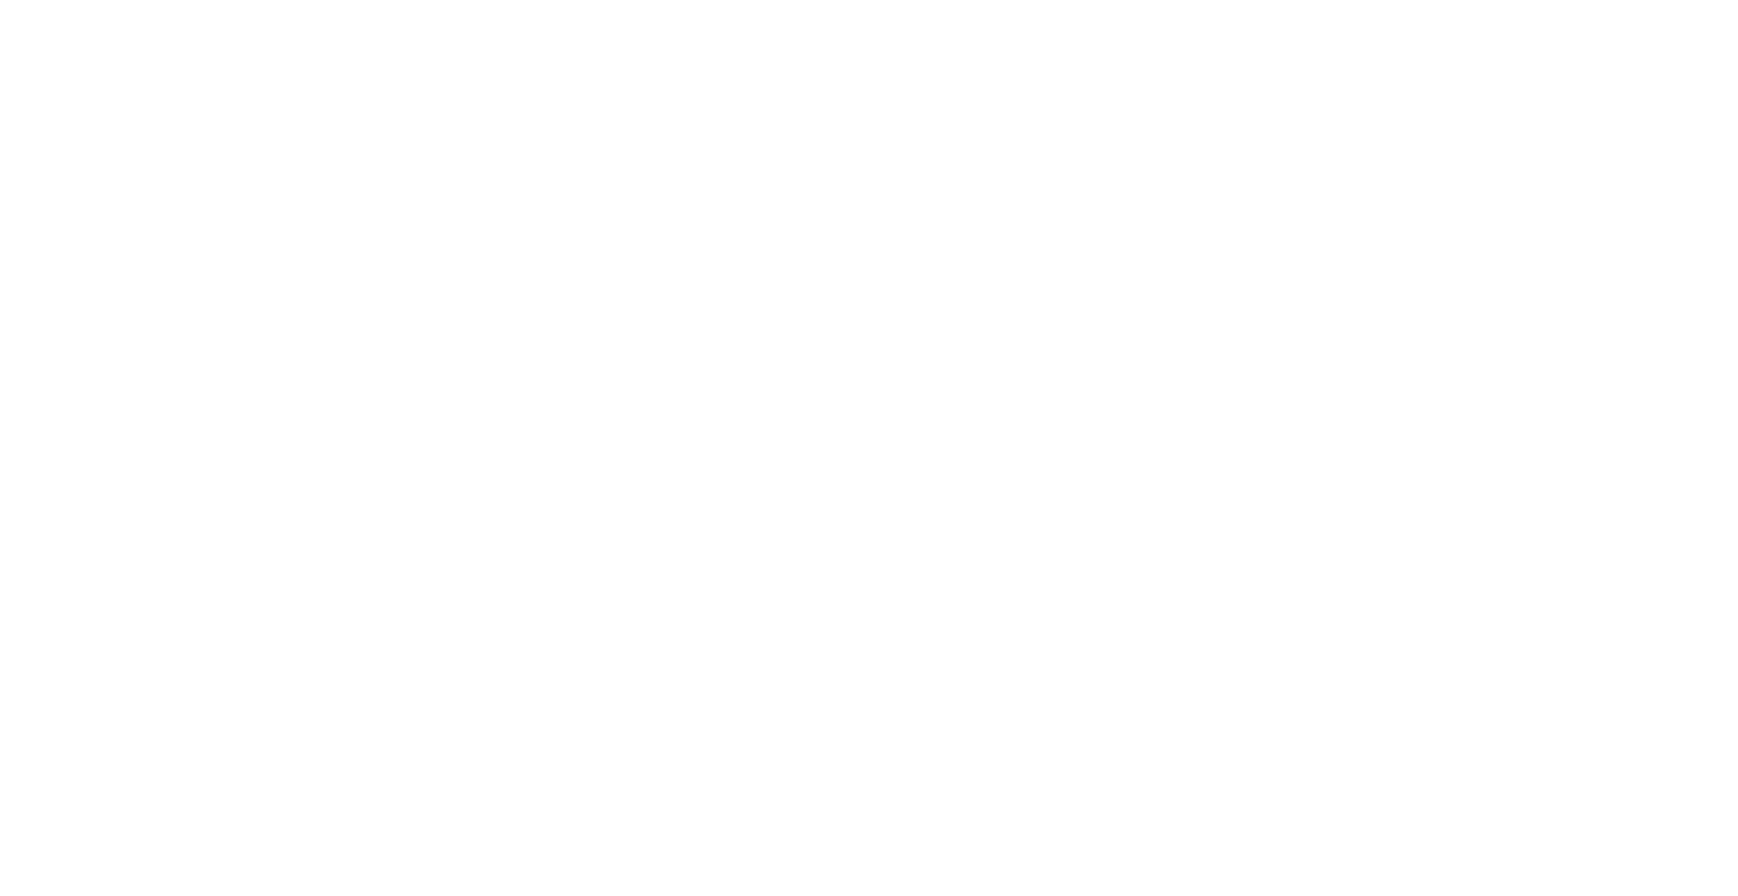 End Sexual Violence Now Image